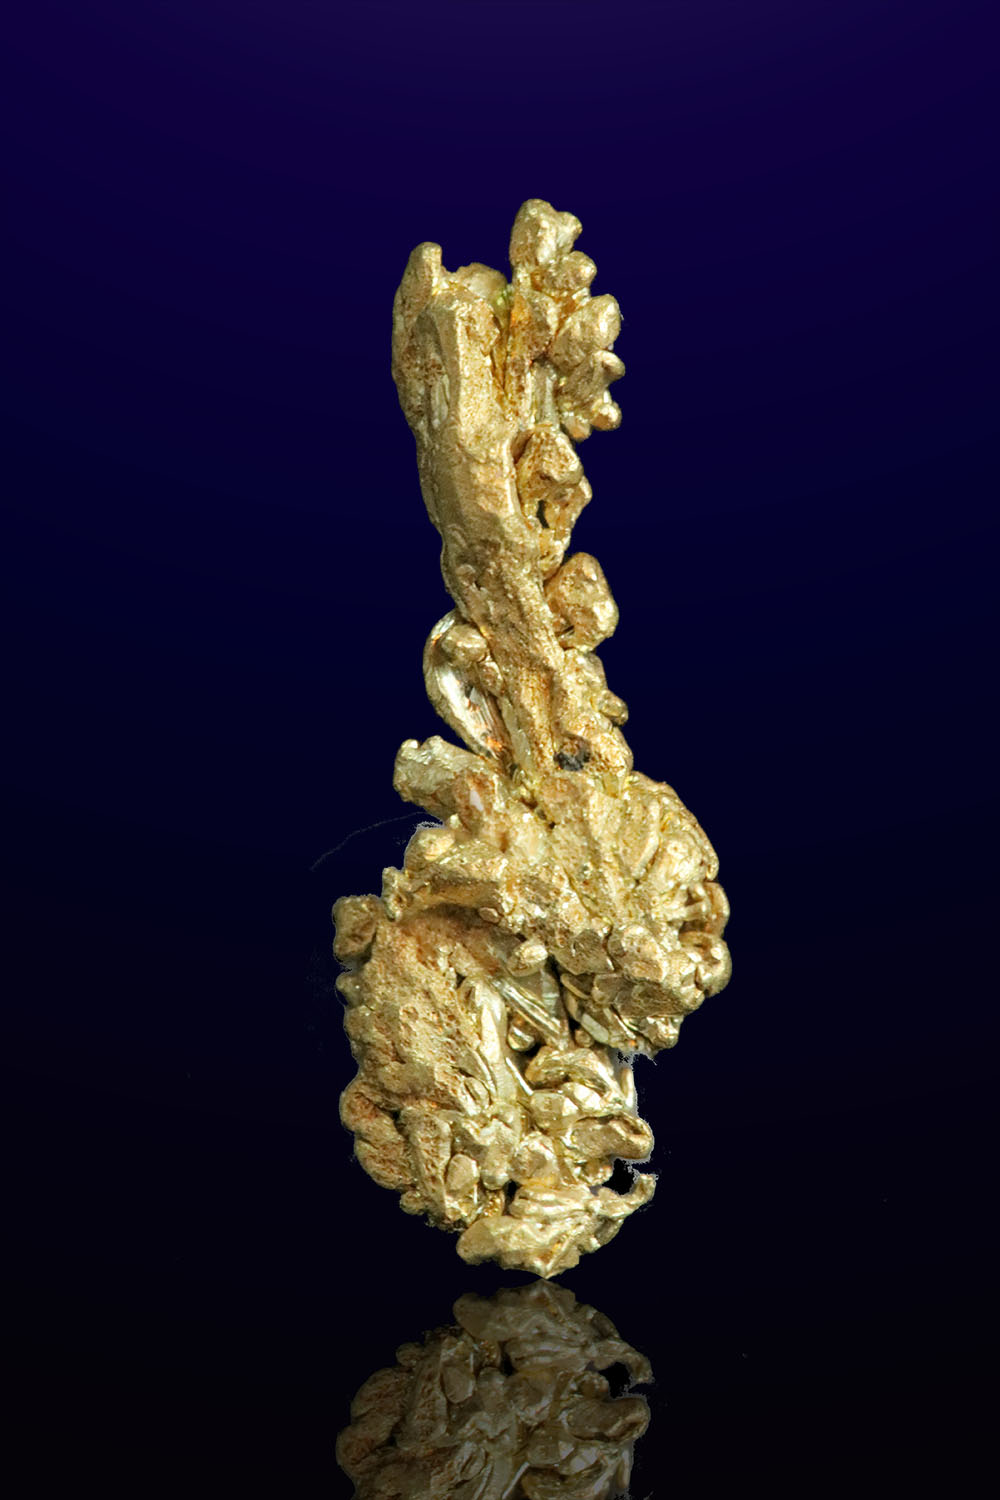 Elongated Twisted Natural Gold Crystal - Mt. Kare, PNG